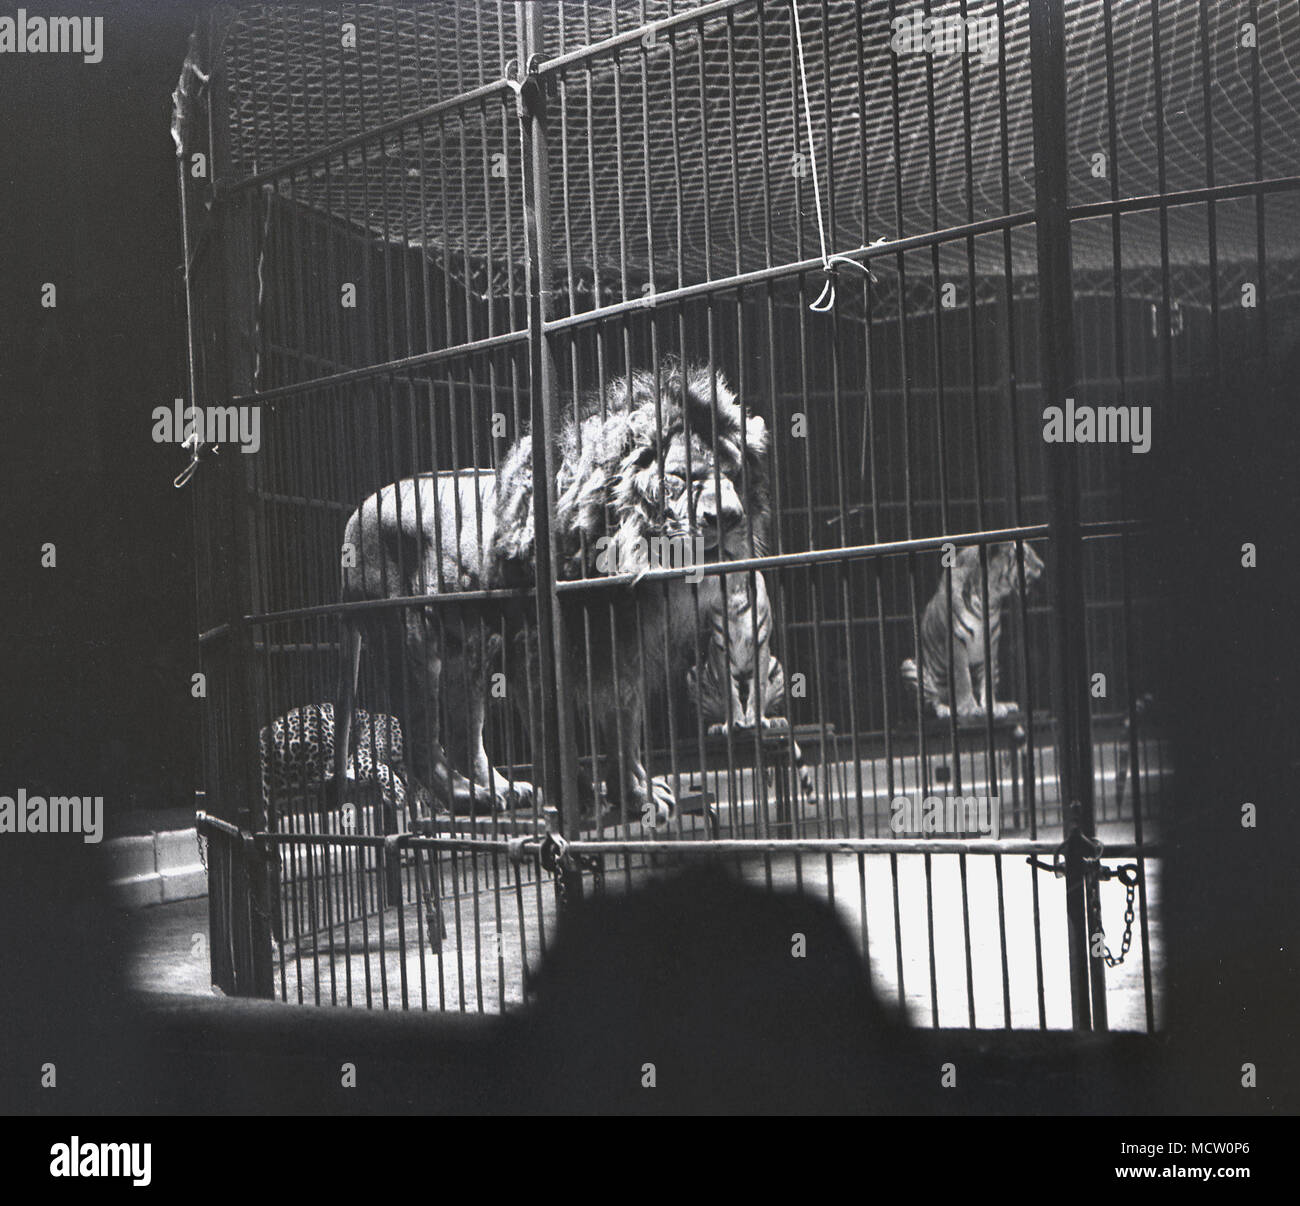 1950s, historical picture of a 'big cat', a lion standing on a stool inside the cage in the circus ring, at the Belle Vue International Circus, Manchester, England, UK. The circus was a poular attraction there in its day and ran for over 50 years.  Also at Belle Vue was a zoo and amusement park and a stadium which hosted speedway events. - Stock Image